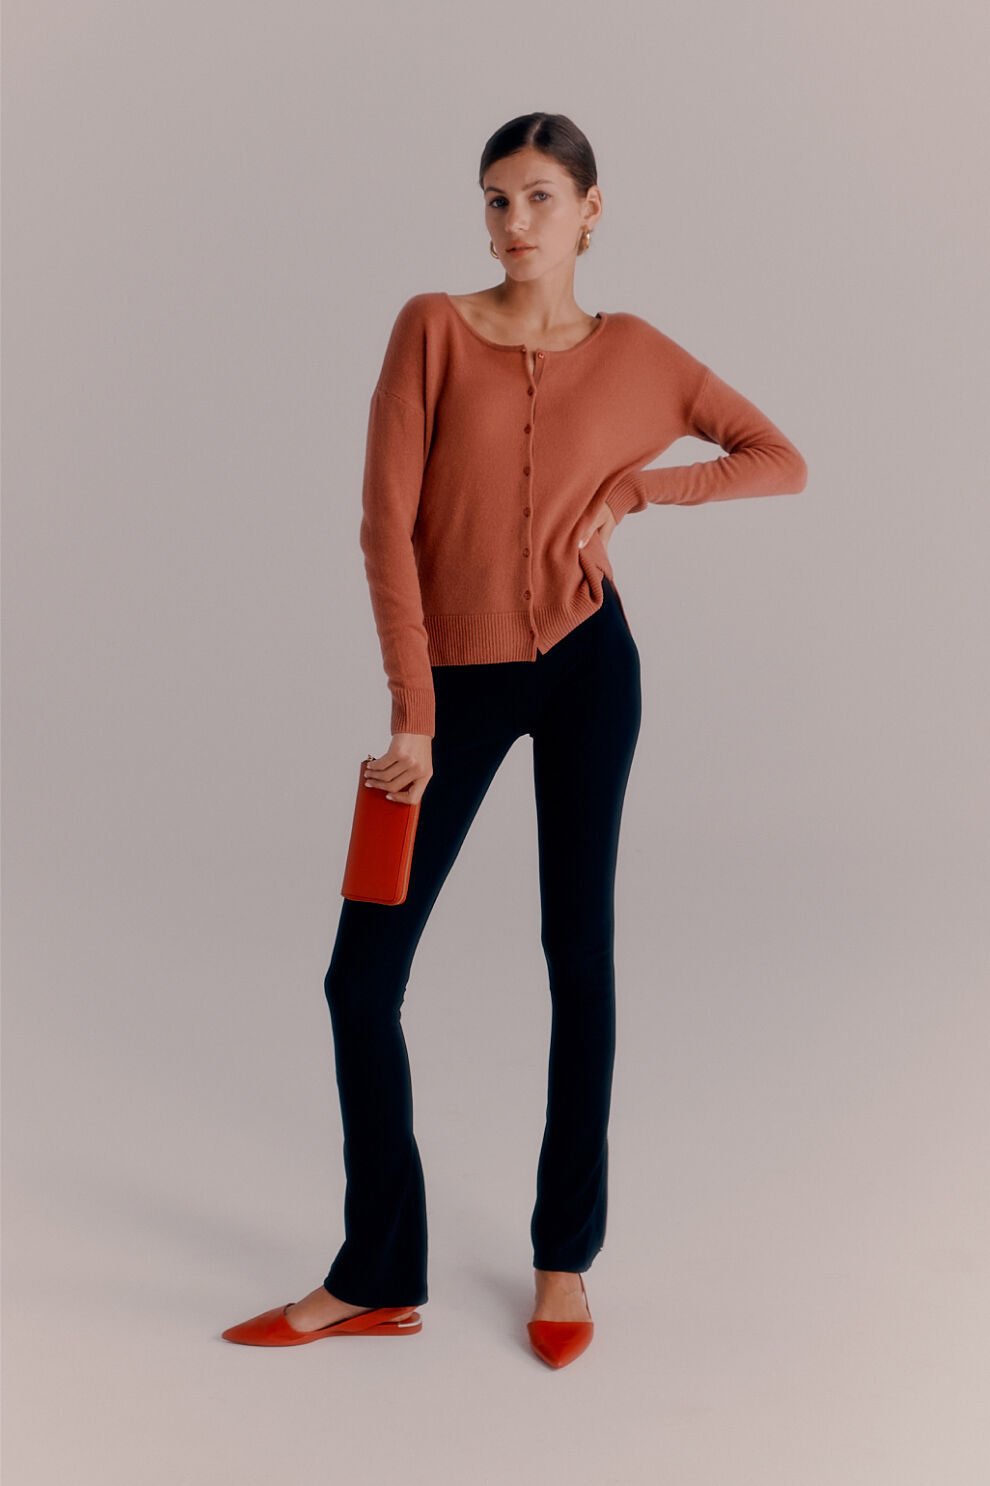 Cuyana Single-Origin Cashmere Cardigan, Ponte Legging, Cotton Twill Flared Pant, Classic Zip Around Wallet